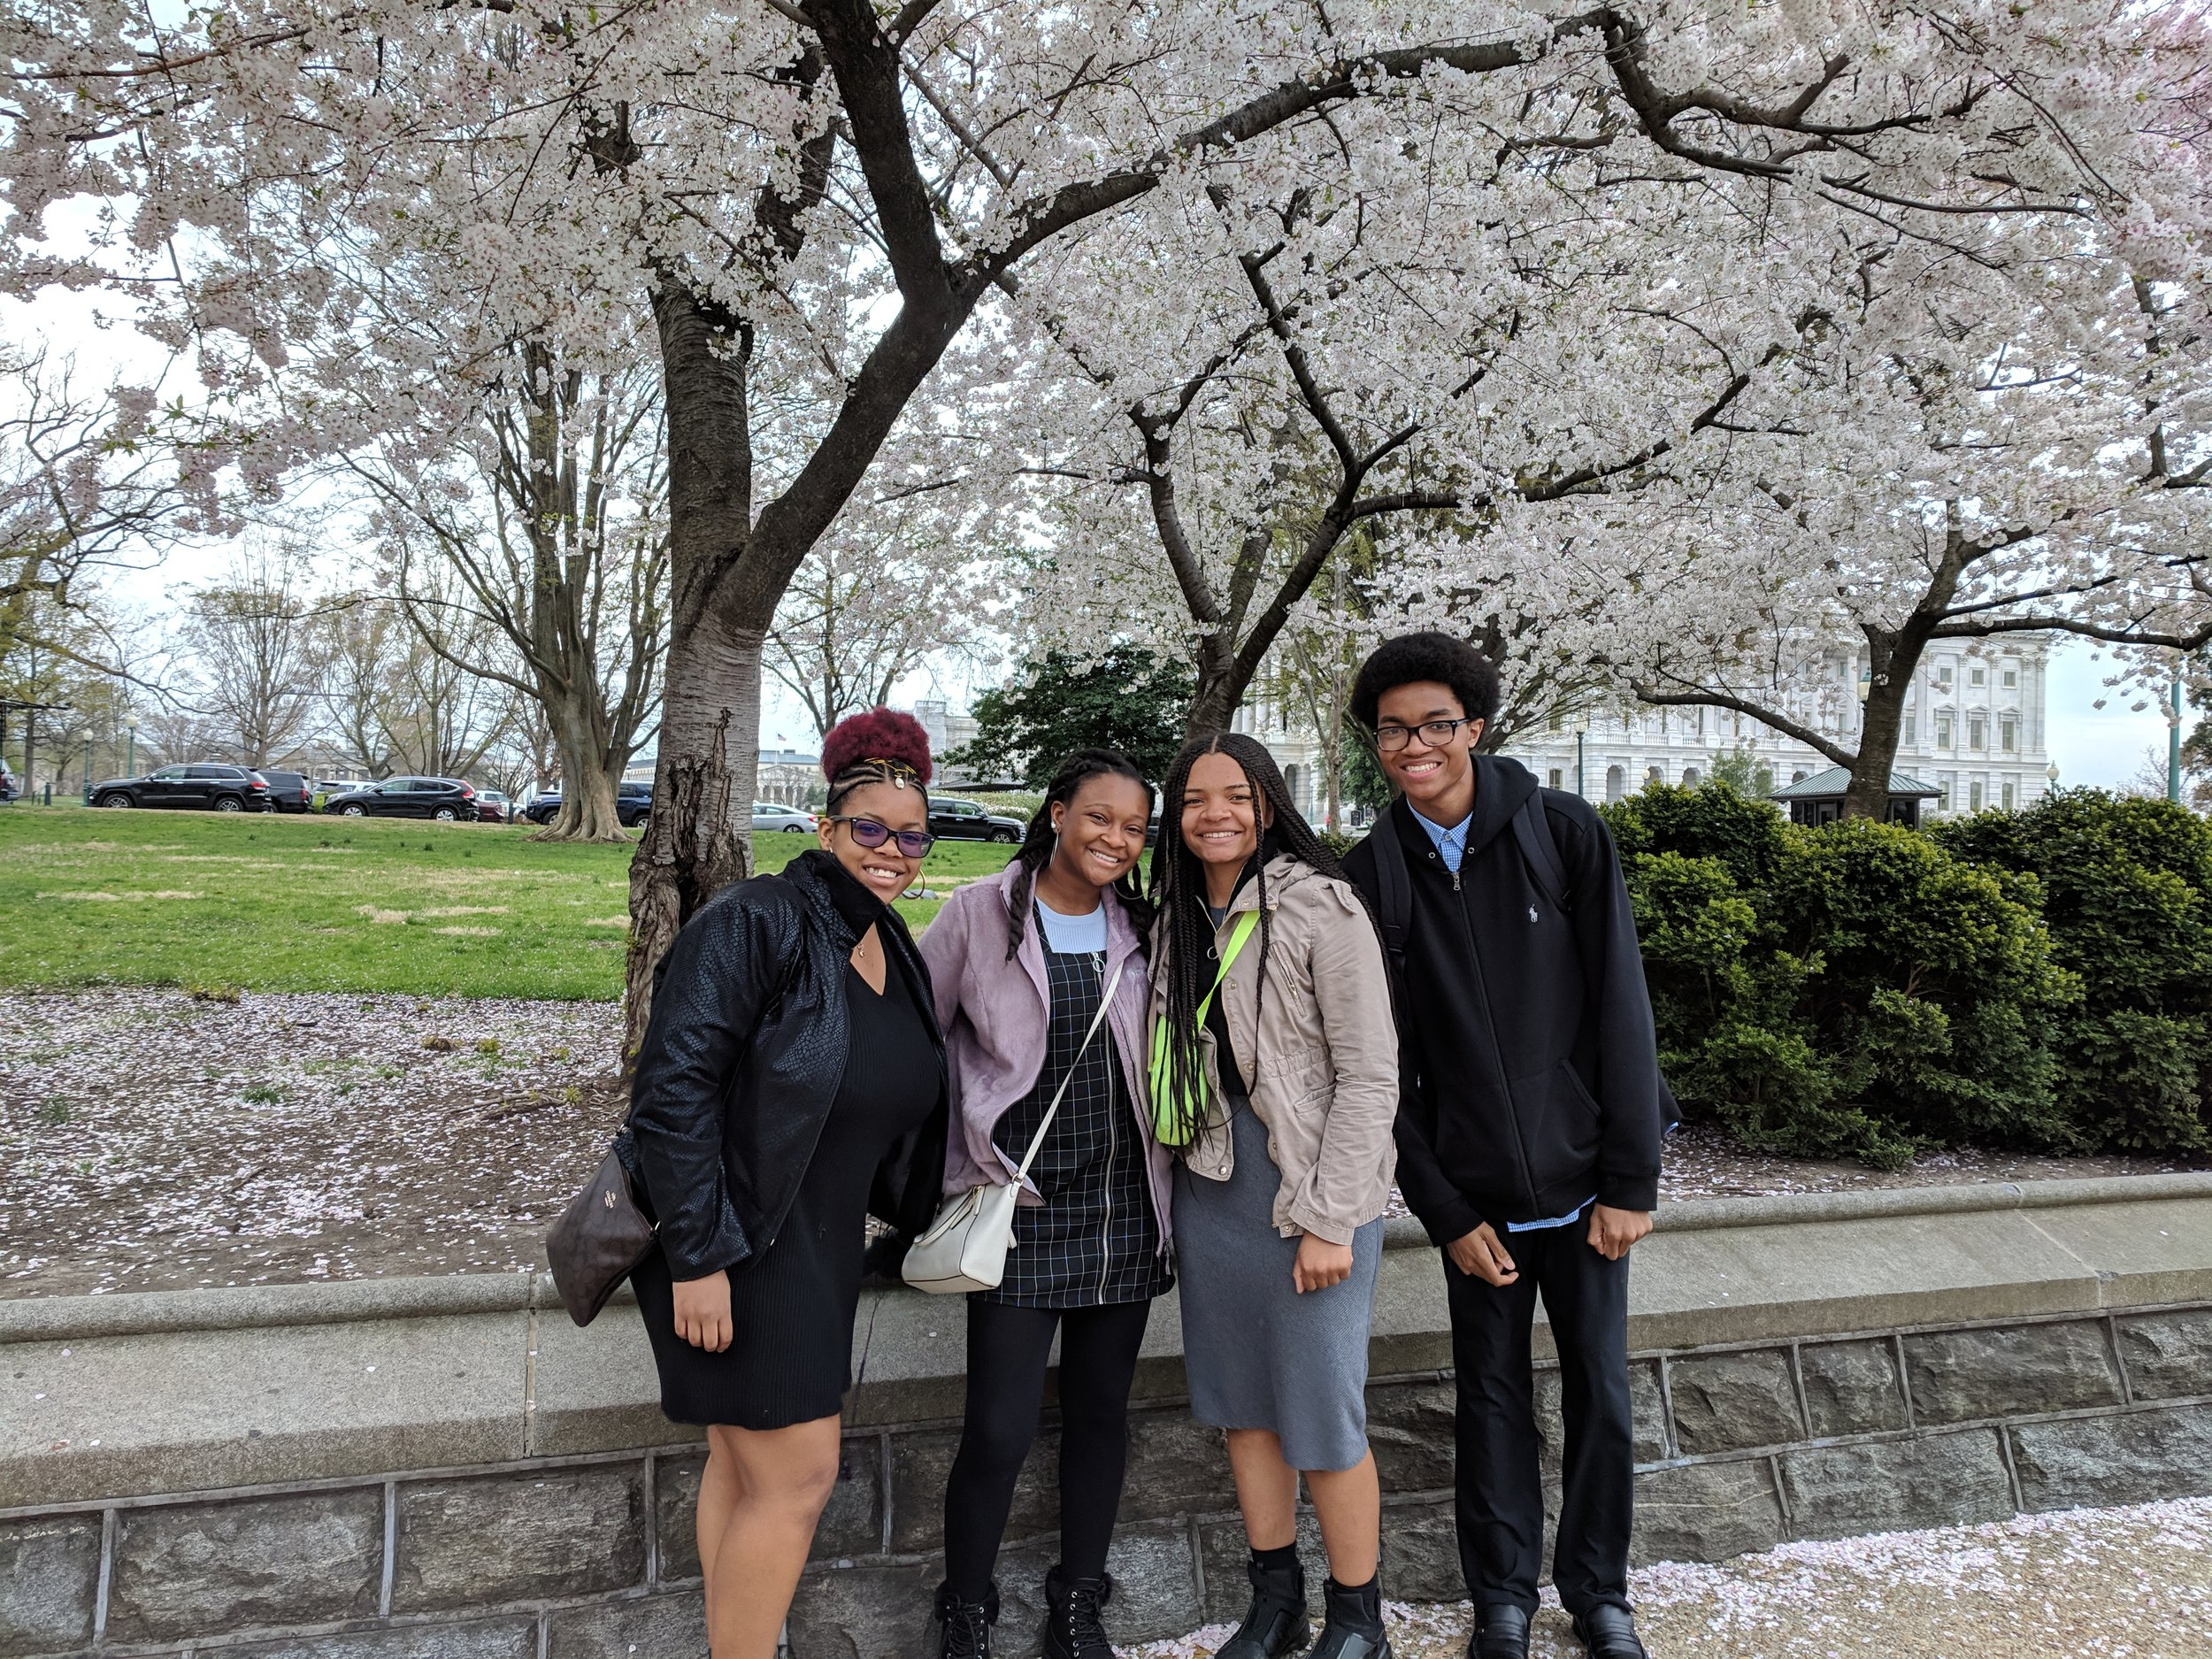 2018-2019 Grand Prize winners enjoy the beautiful cherry blossom trees in DC.